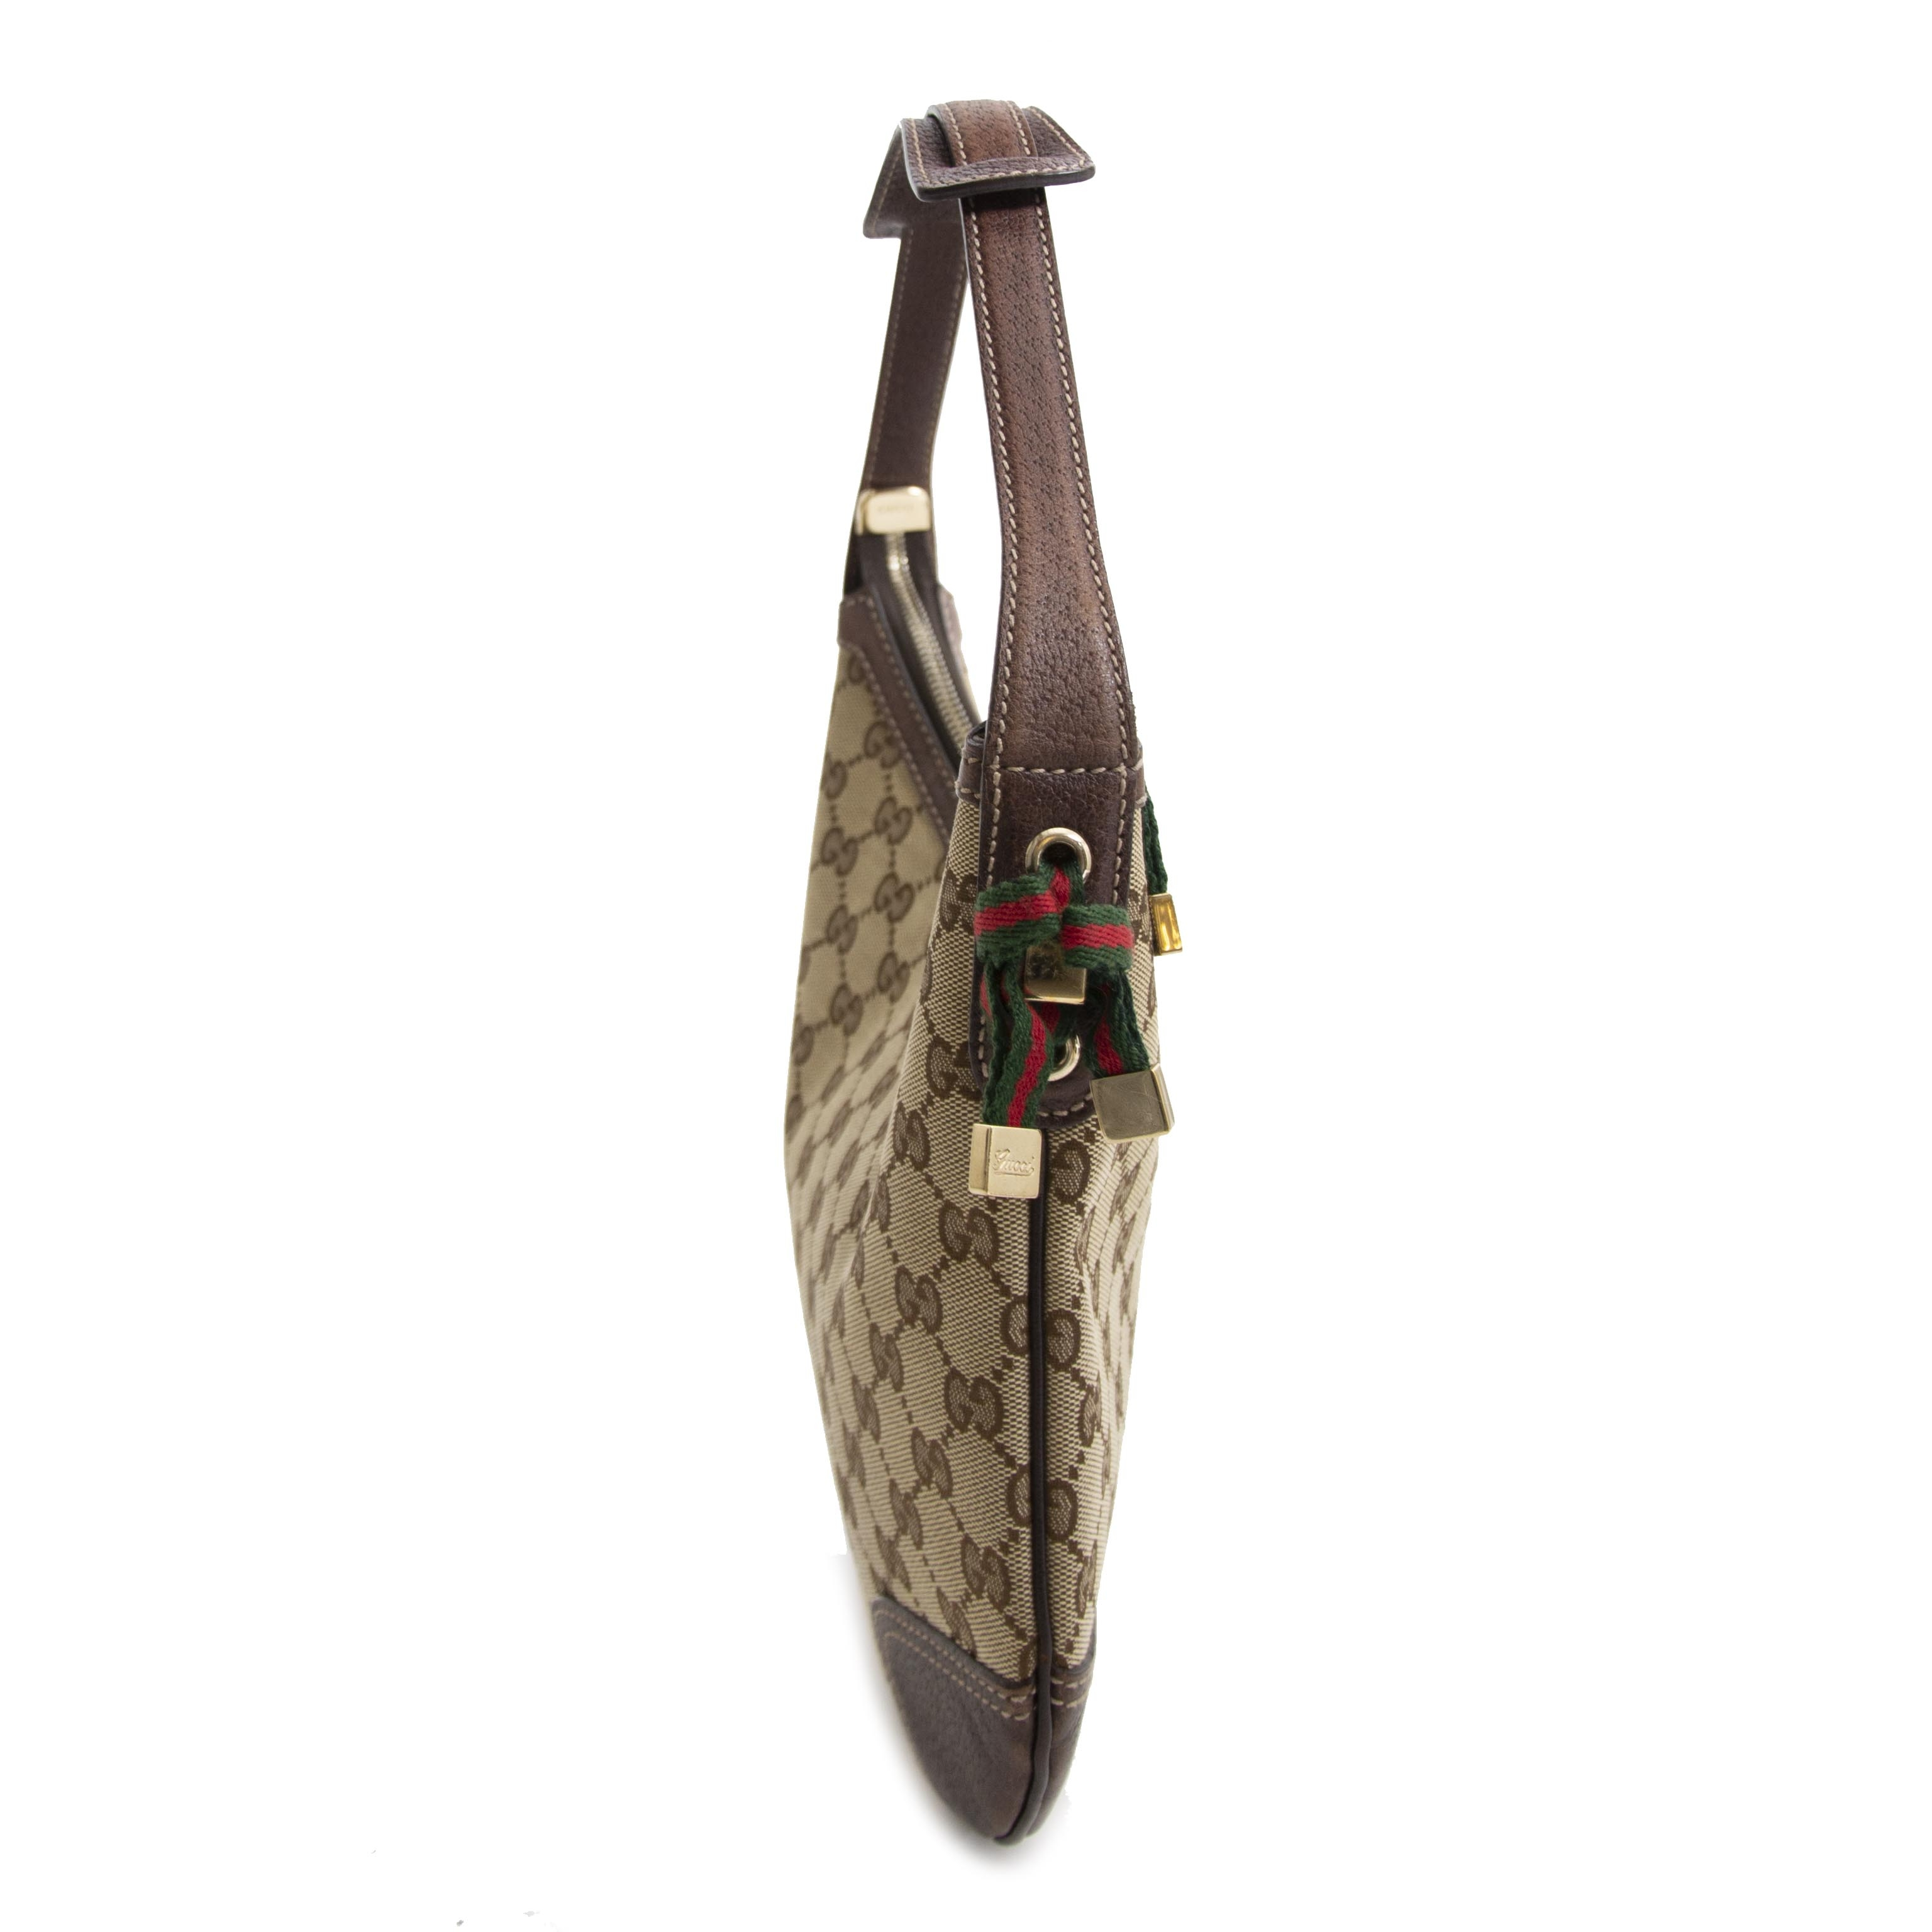 Gucci Beige Monogram Bag